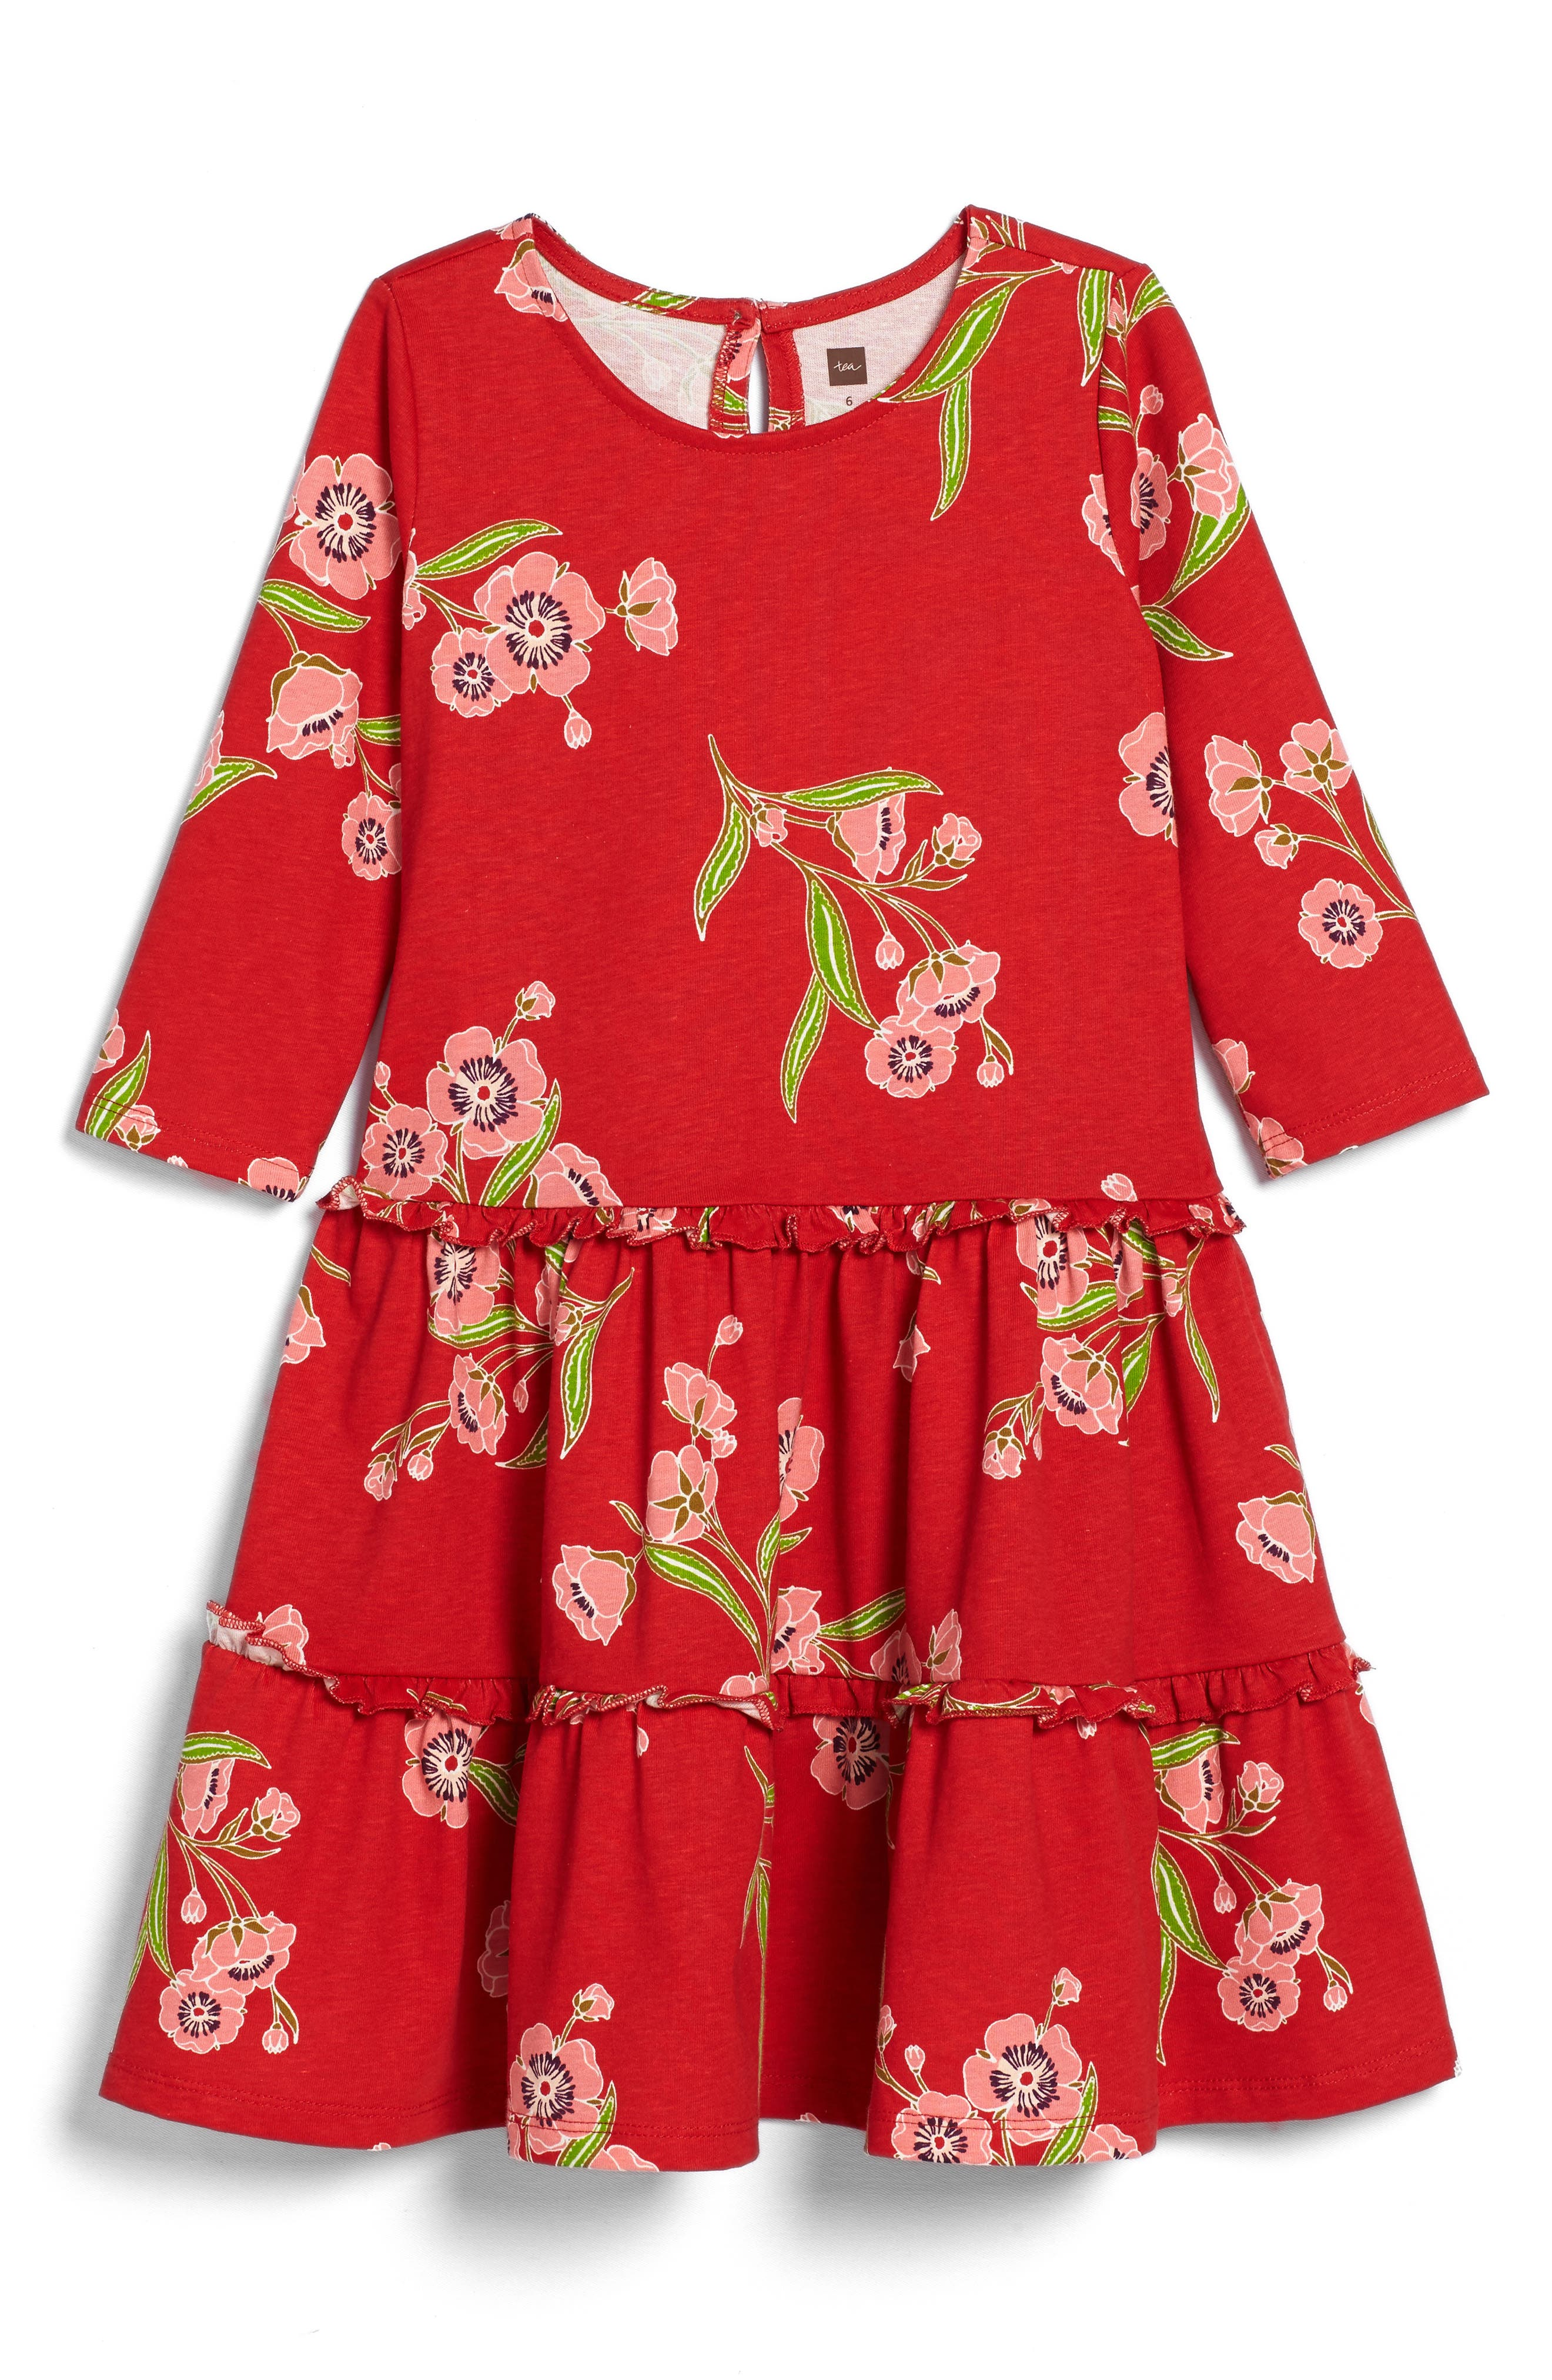 Rowan Floral Print Tiered Dress,                             Main thumbnail 1, color,                             Red Lantern